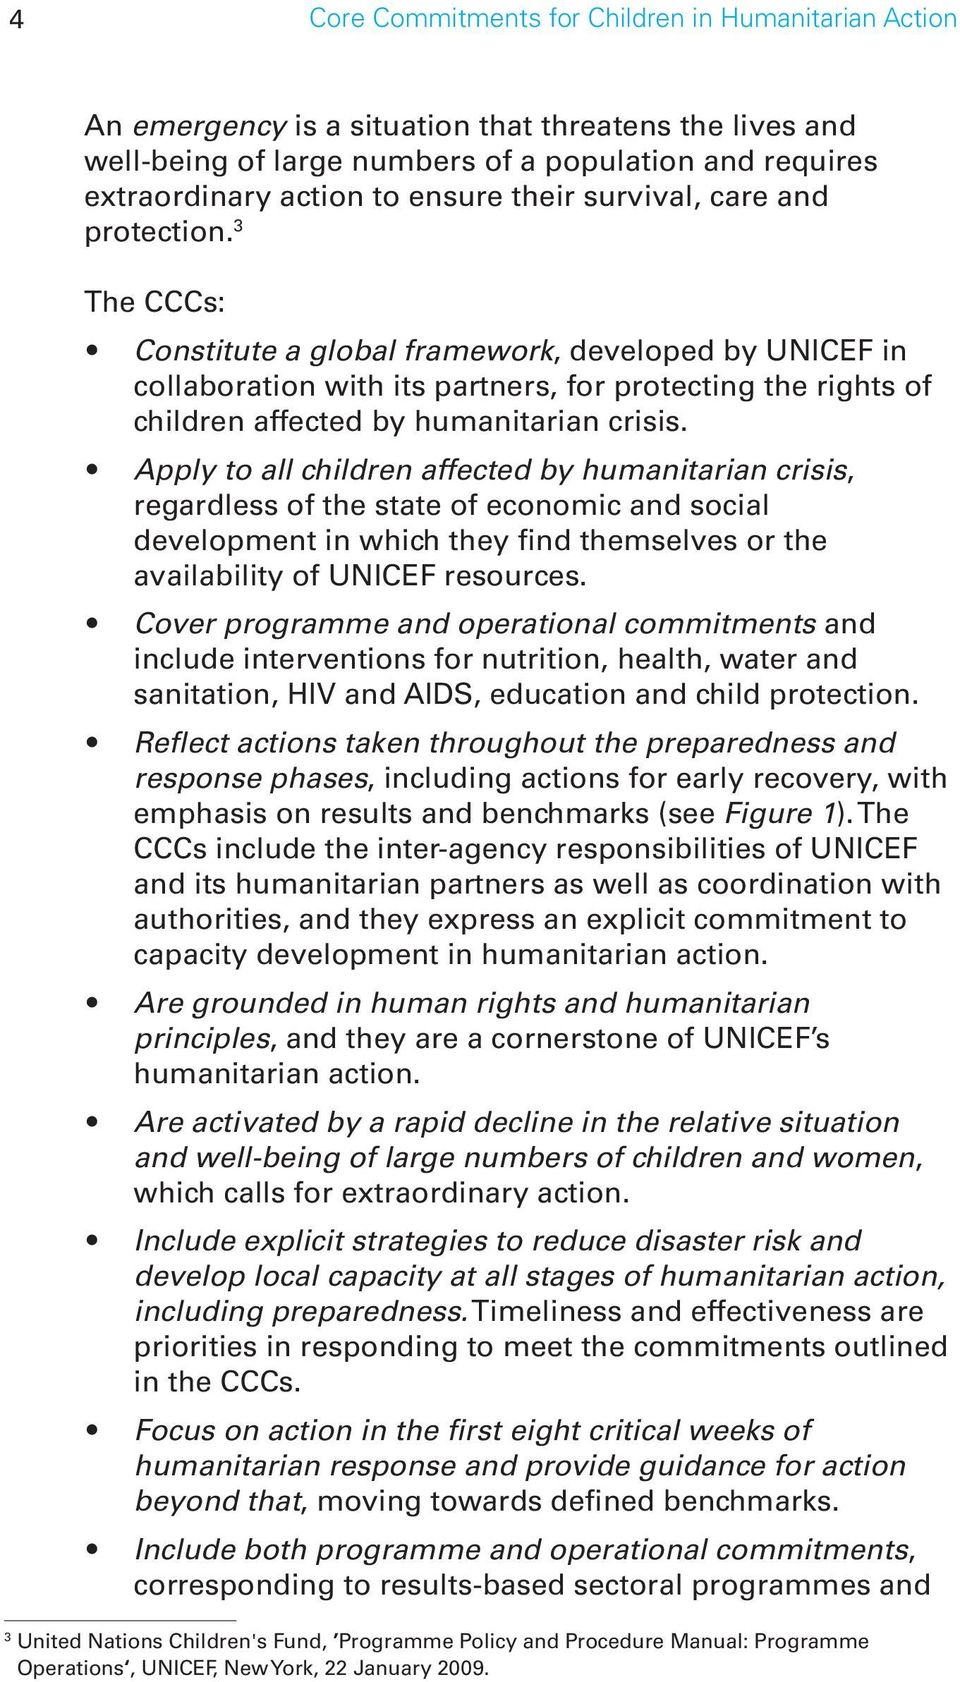 3 The CCCs: Constitute a global framework, developed by UNICEF in collaboration with its partners, for protecting the rights of children affected by humanitarian crisis.